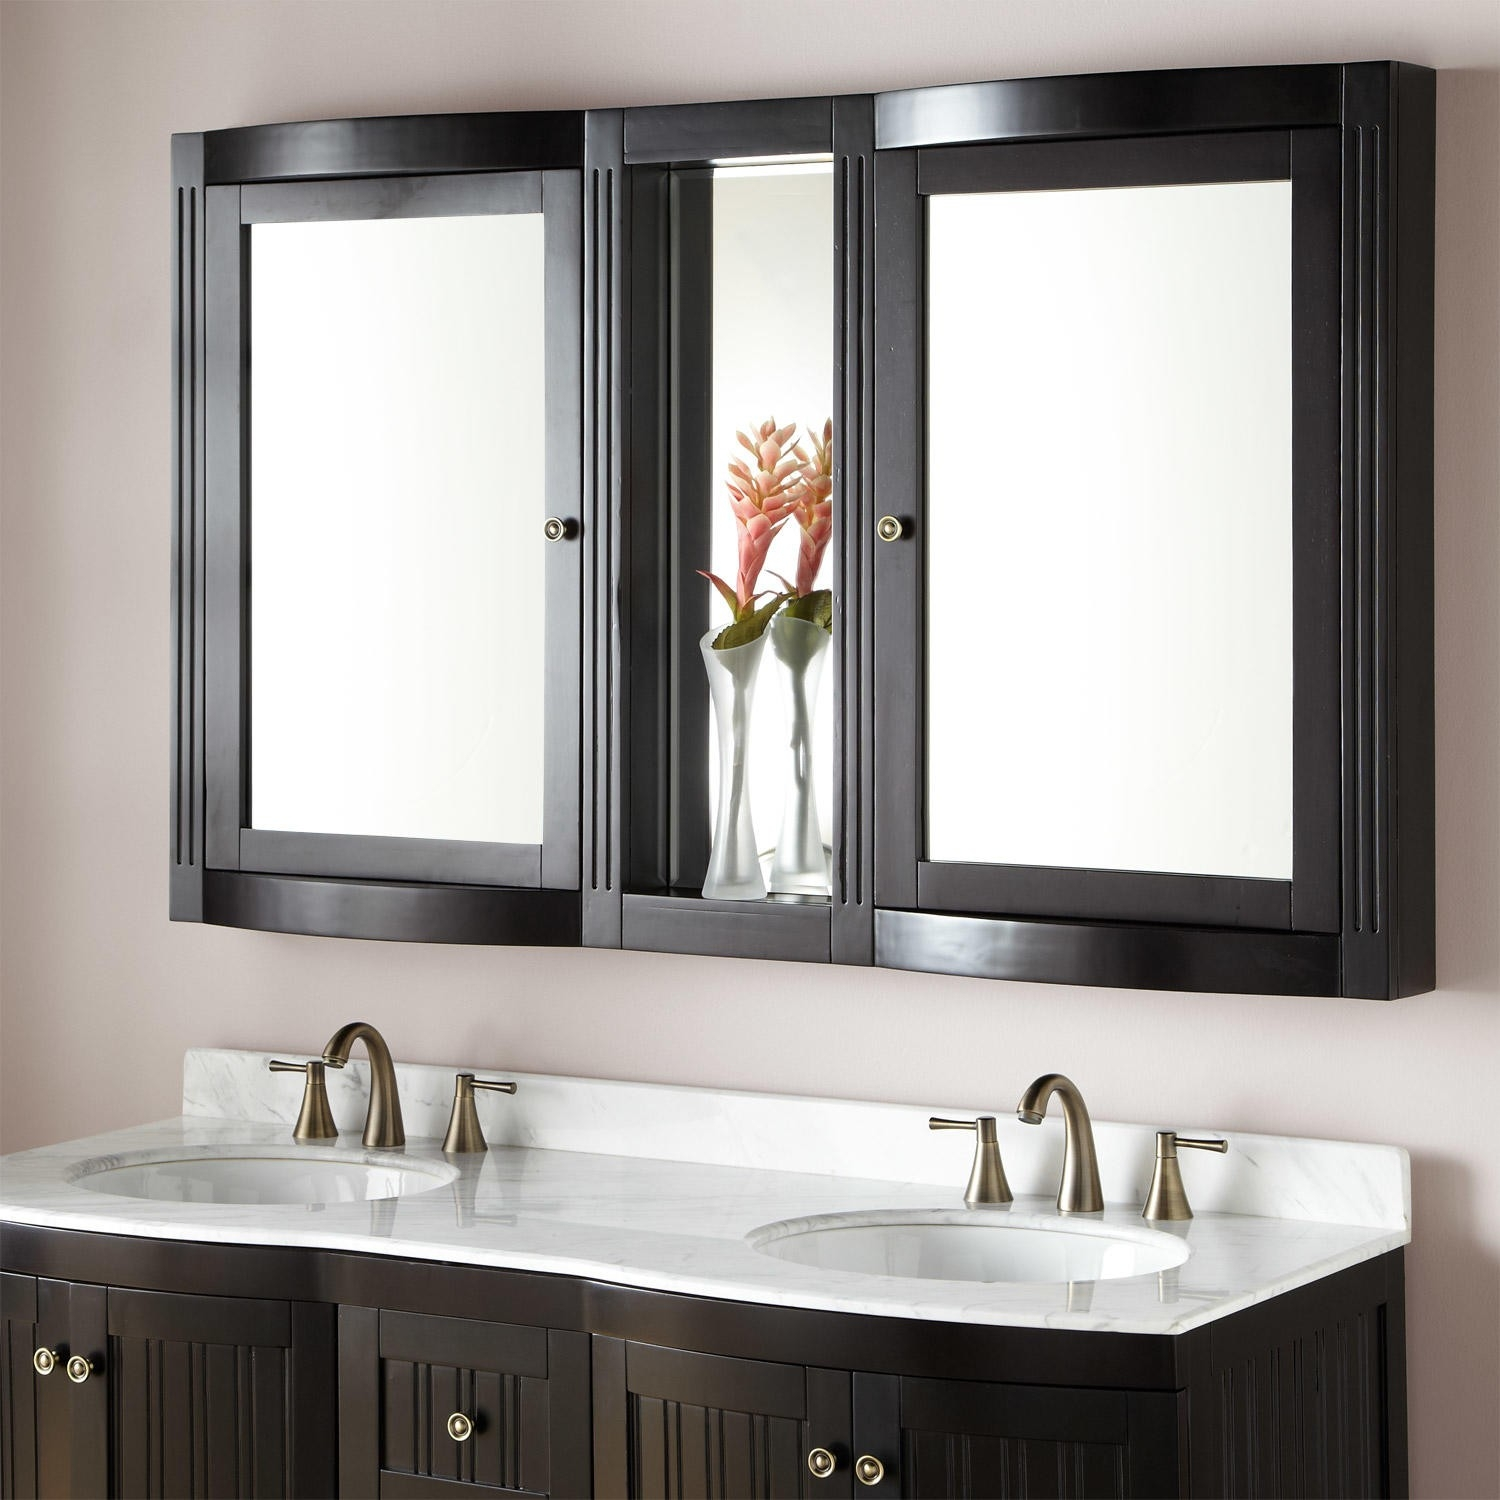 Mirrored Medicine Cabinets For Bathrooms